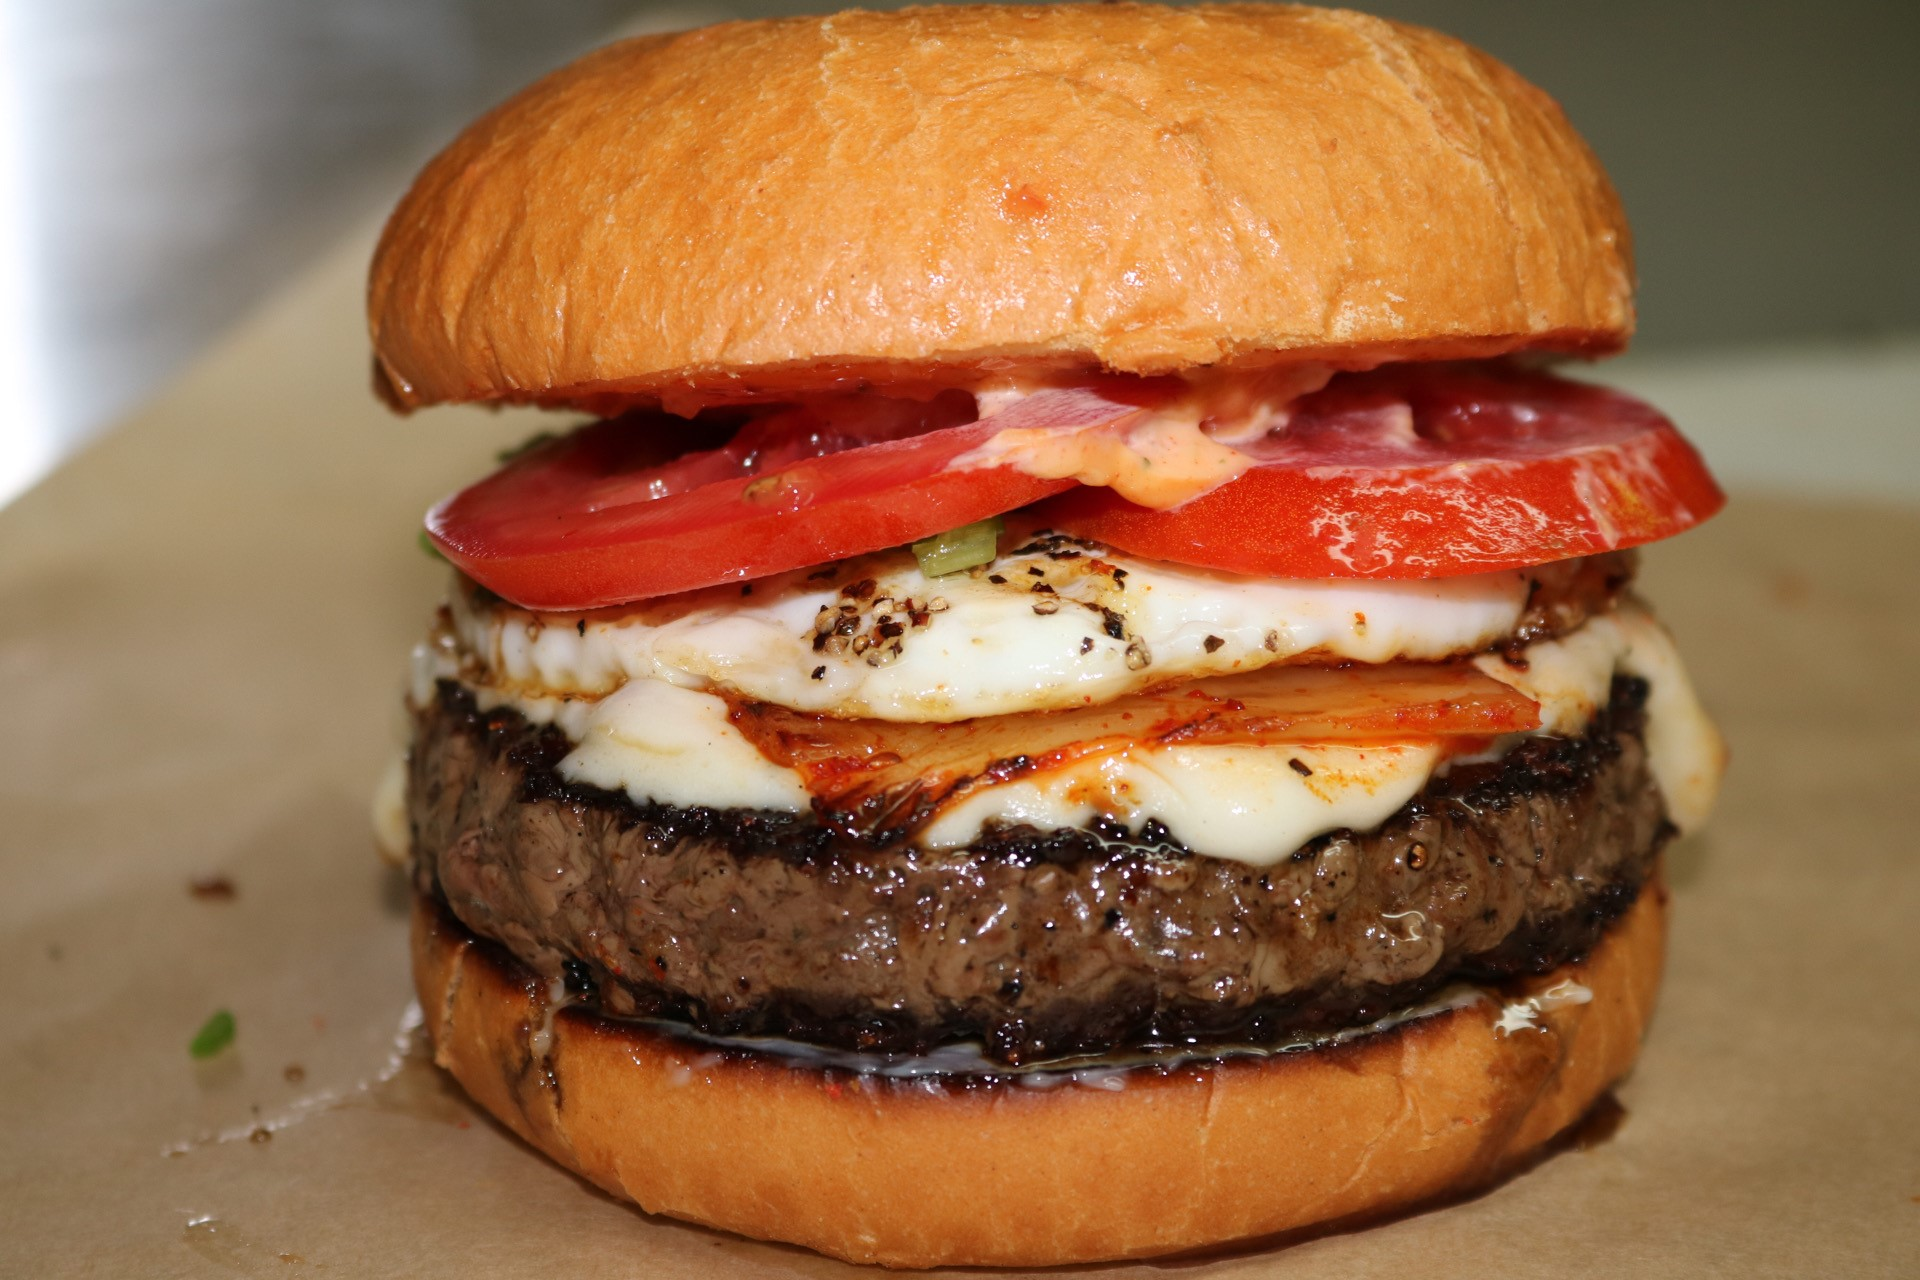 cheeseburger with fried egg, tomato, onion, and sauce